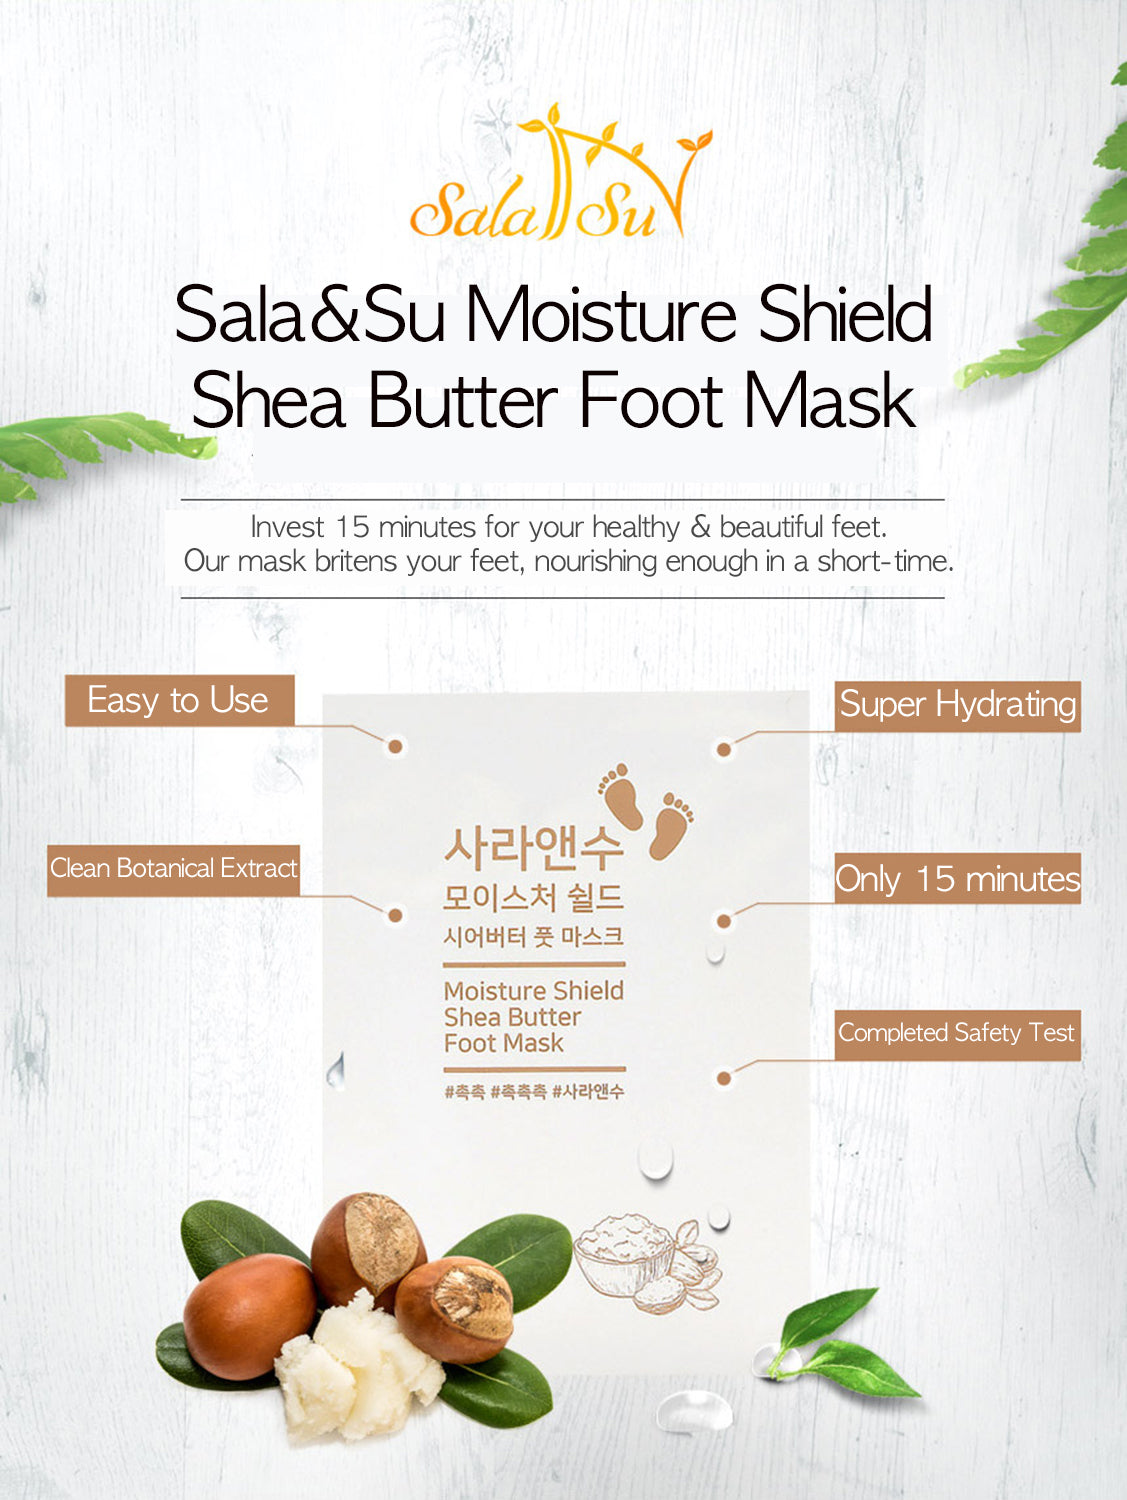 Sala&Su Foot Mask Product Description 2